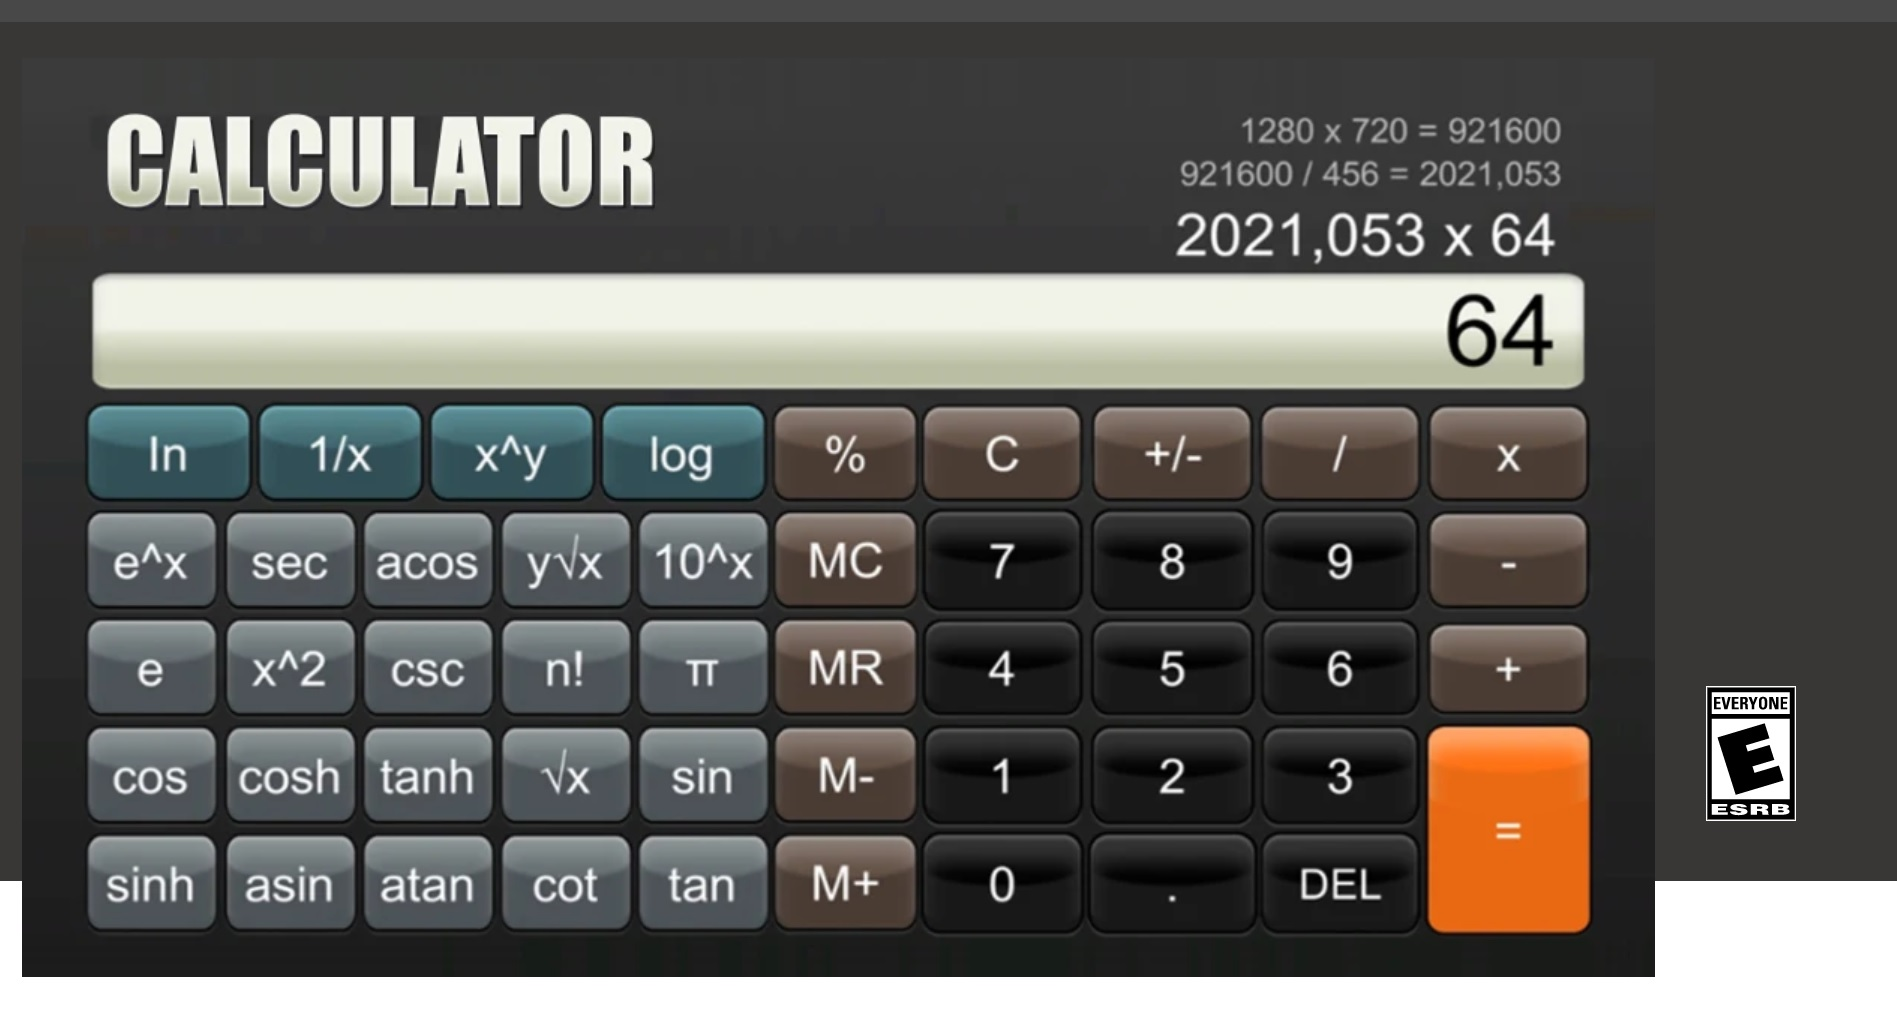 'Calculator' is coming out tomorrow for Switch, and I wonder if there's an emulator hidden inside of it screenshot